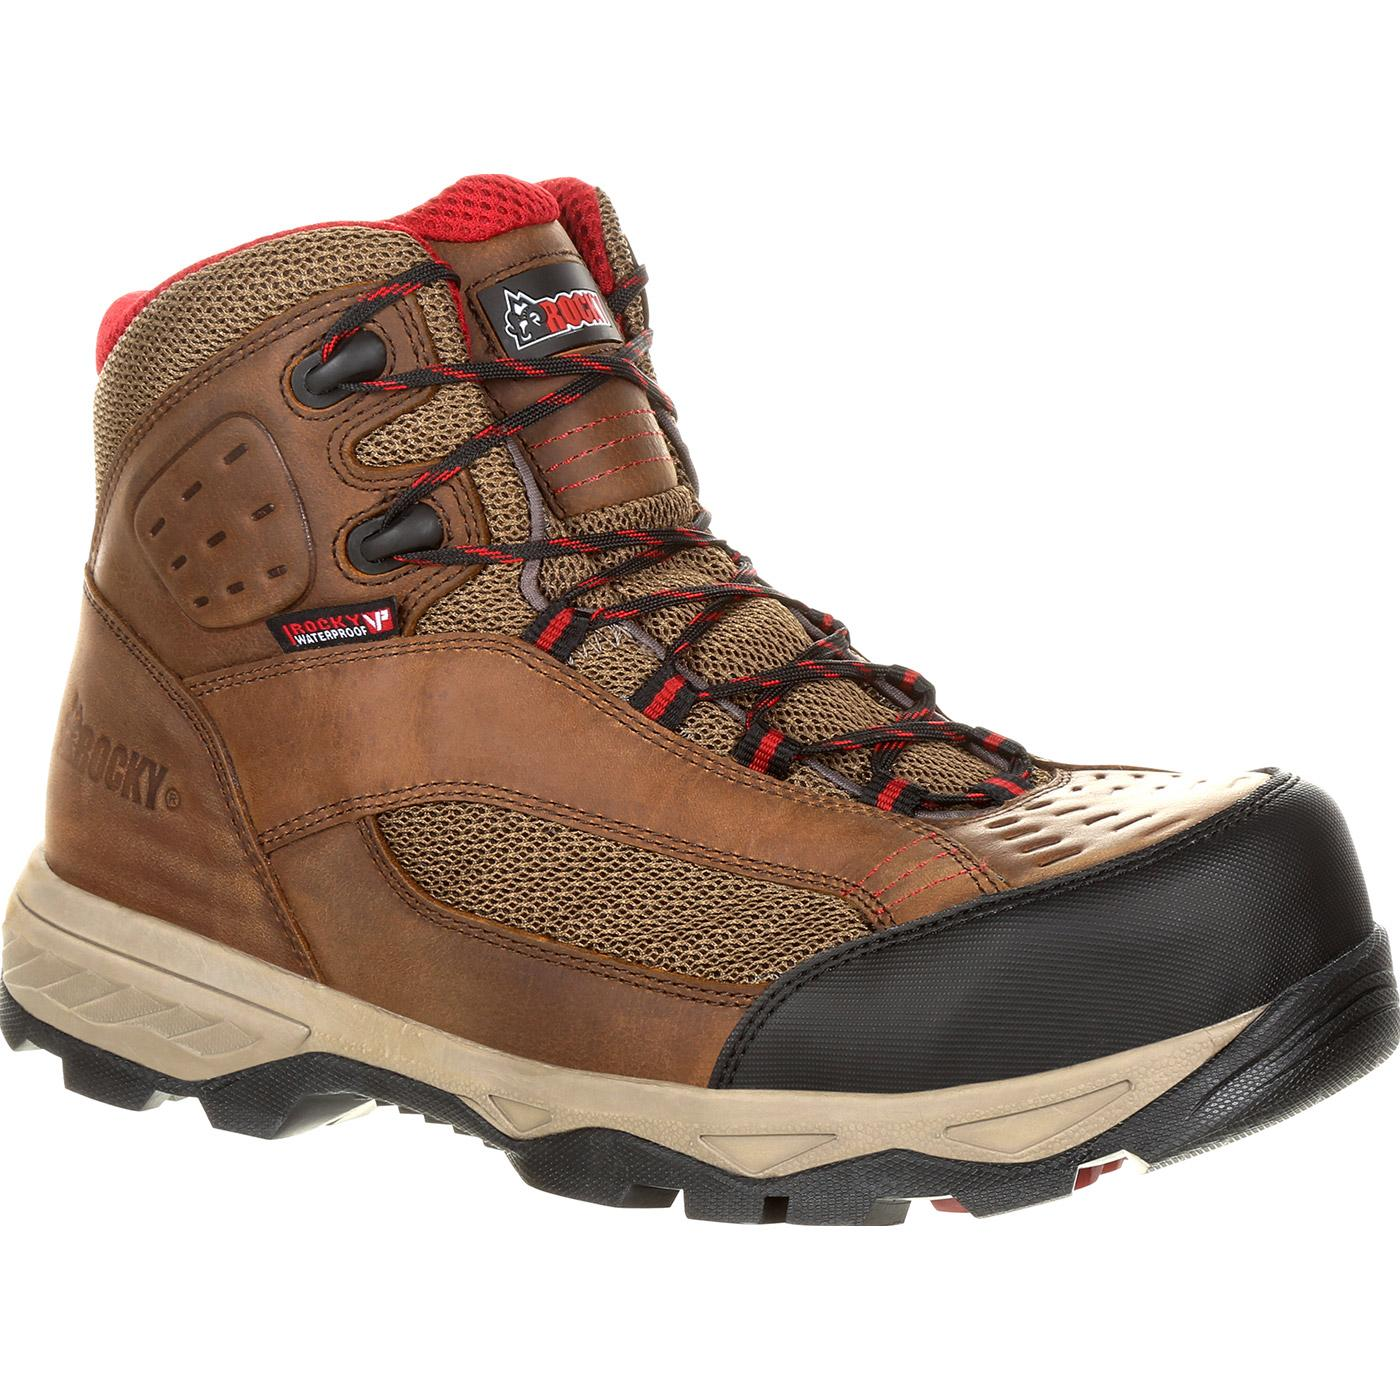 ddd4dd5ab4d Rocky Endeavor Point Composite Toe Waterproof Work Boot